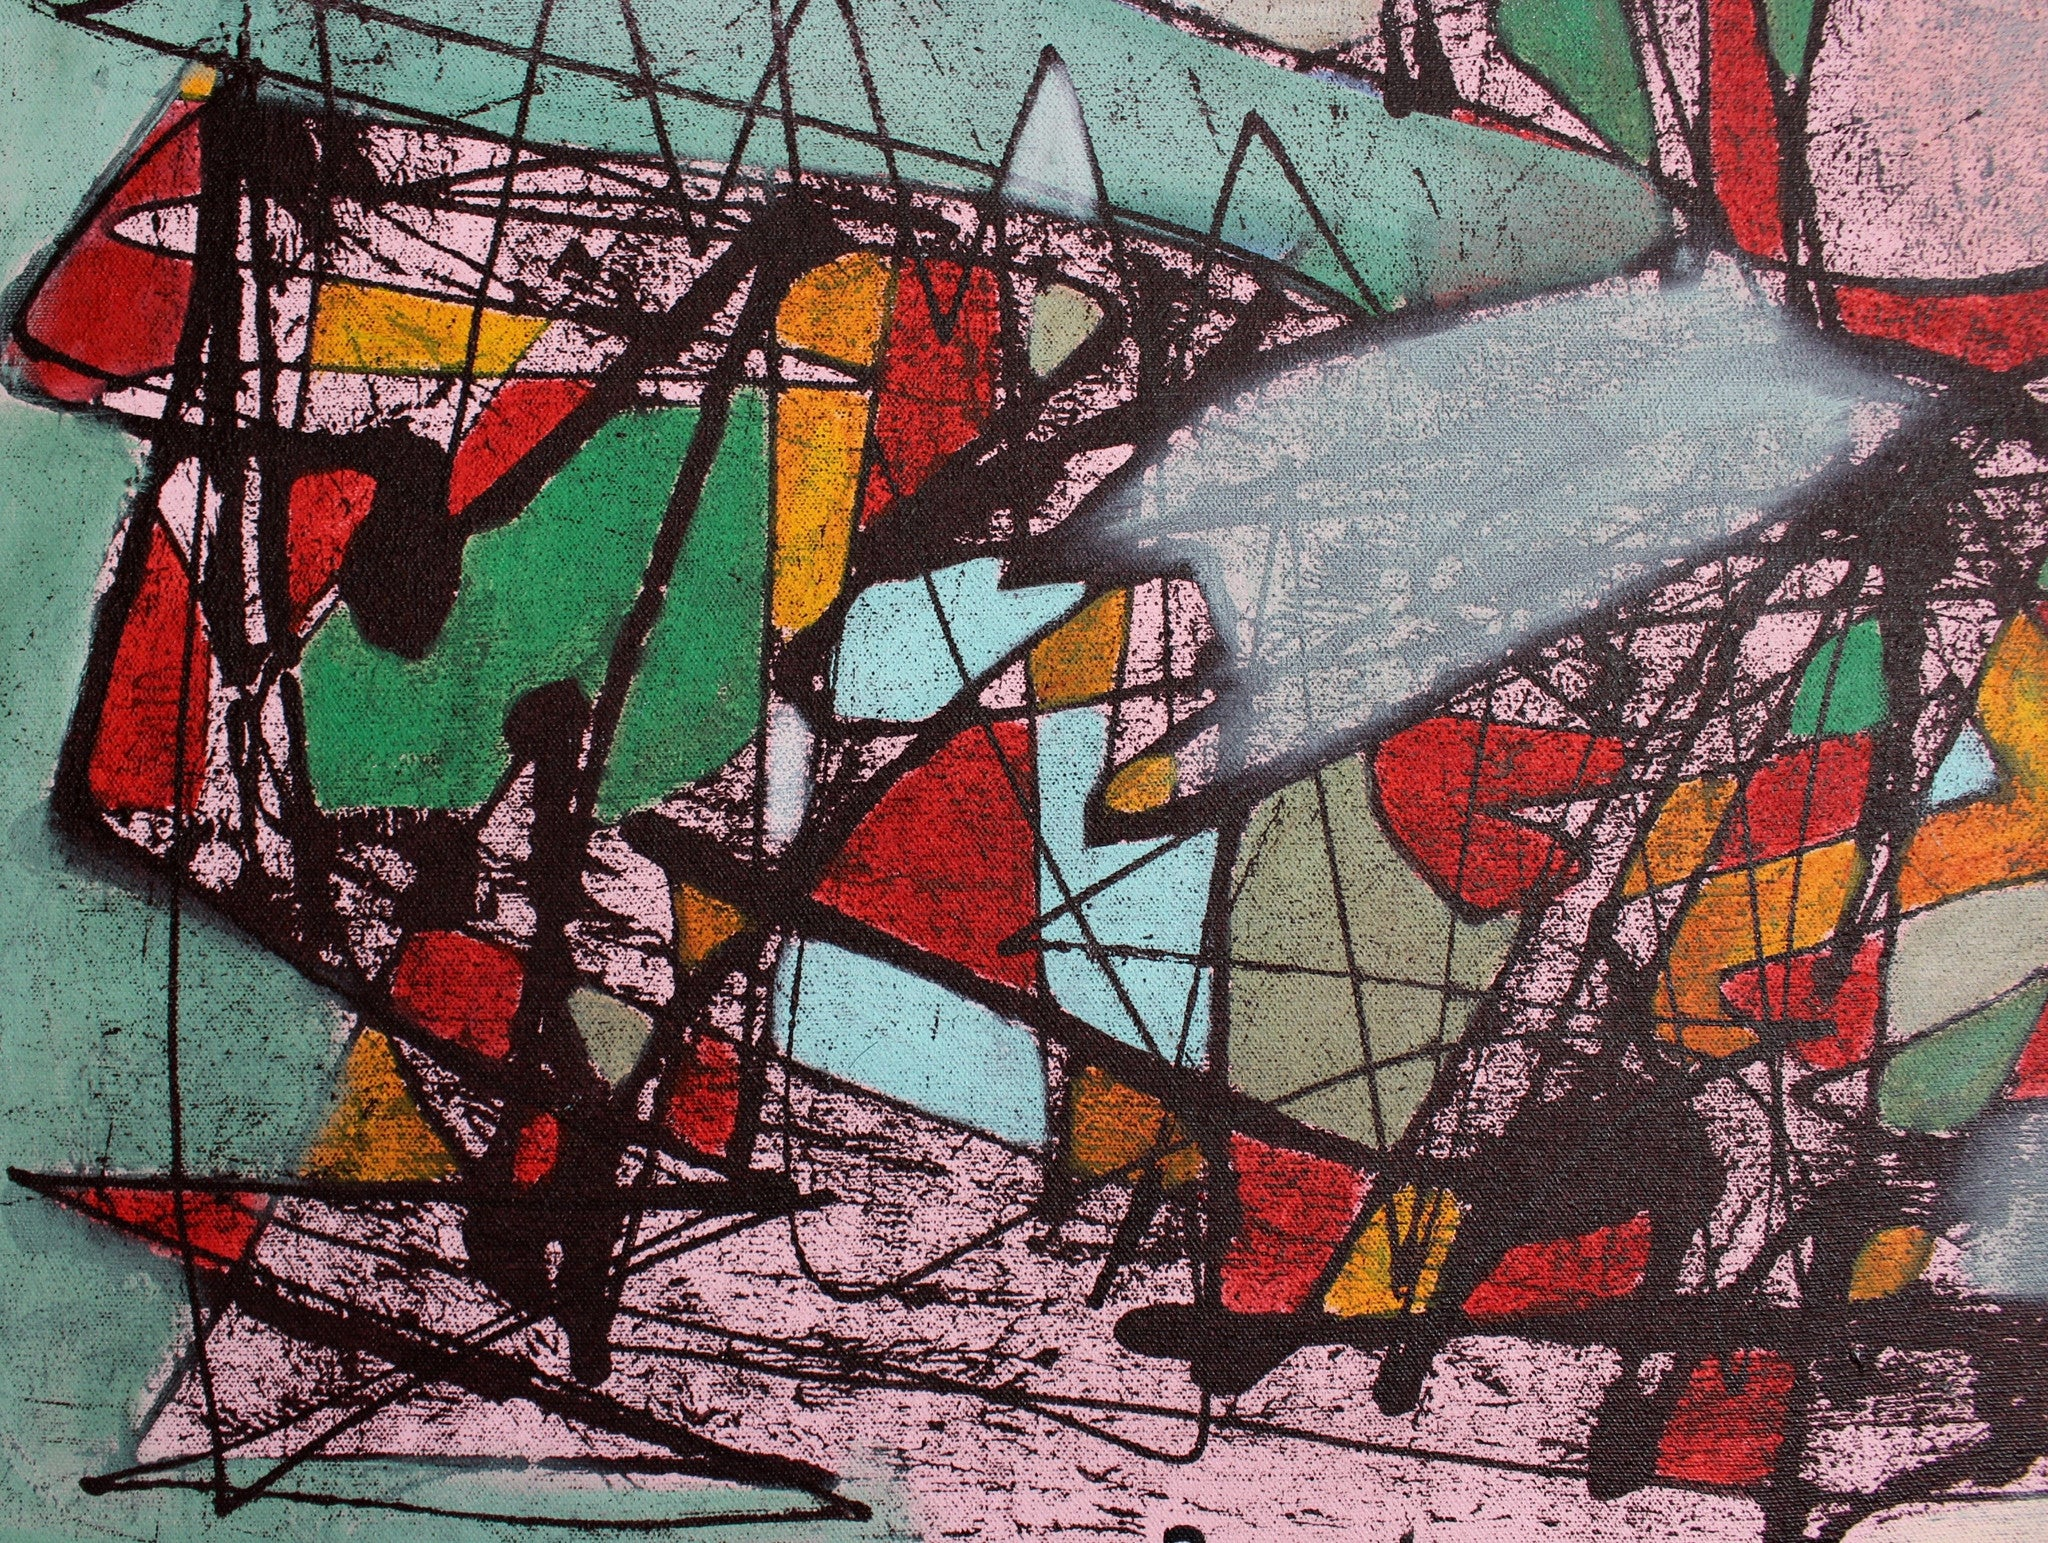 'Abstract Figure 1' by Pandi (I Nyoman Sutaria) (2014)